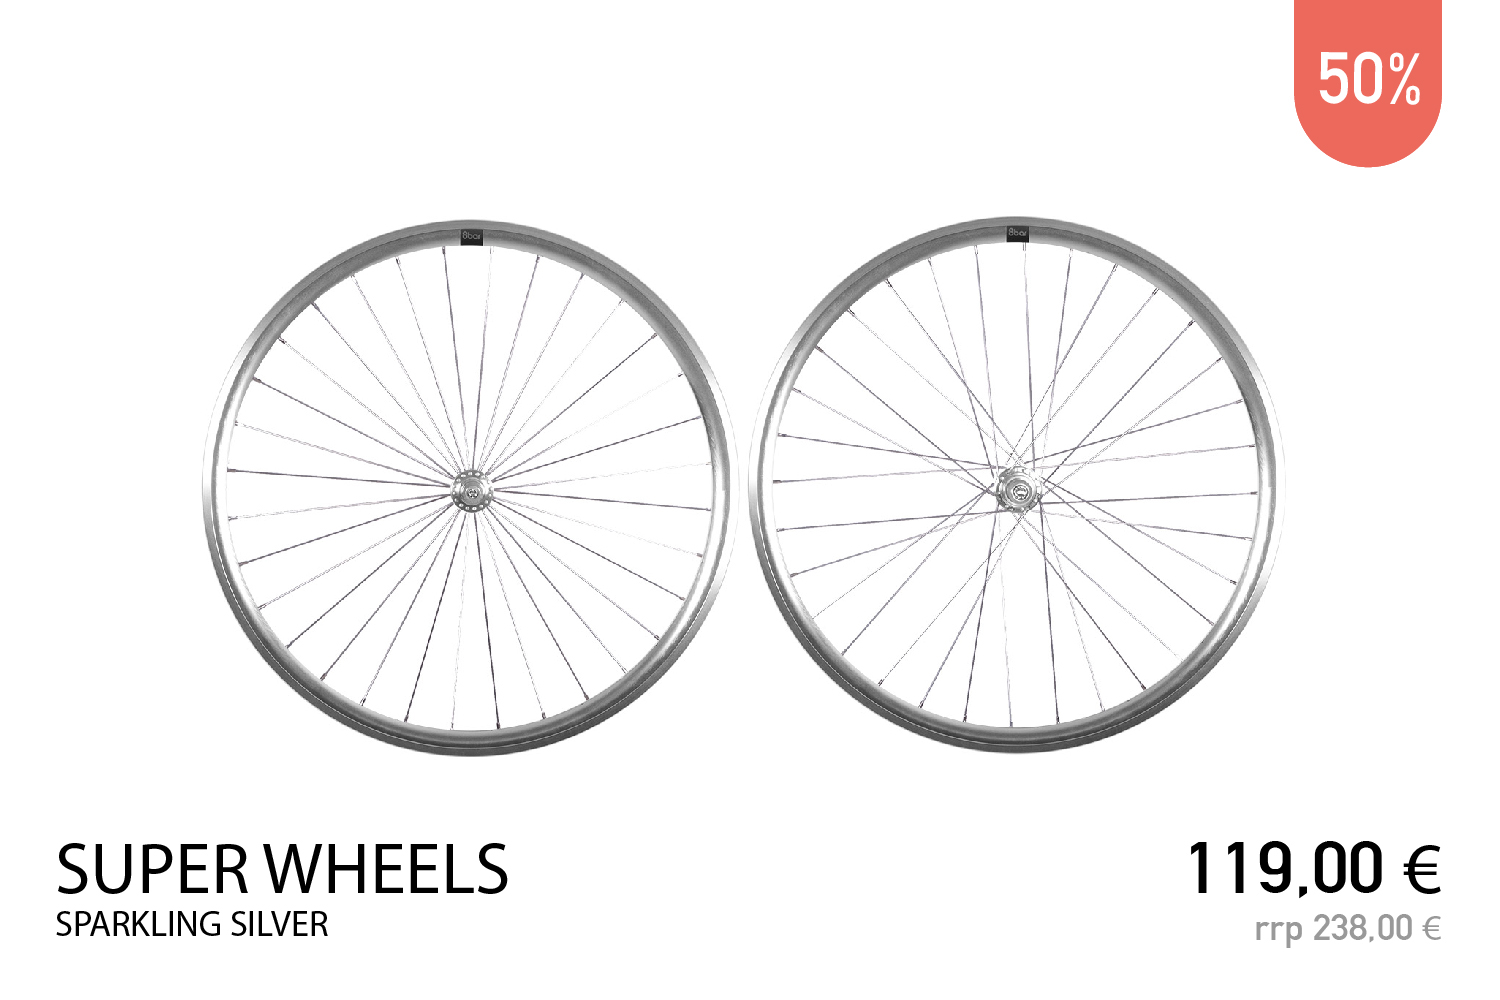 8bar bikes end of season 2017 productsample super wheelset quer 01 01 - 8bar Sale - Save up to 50%!